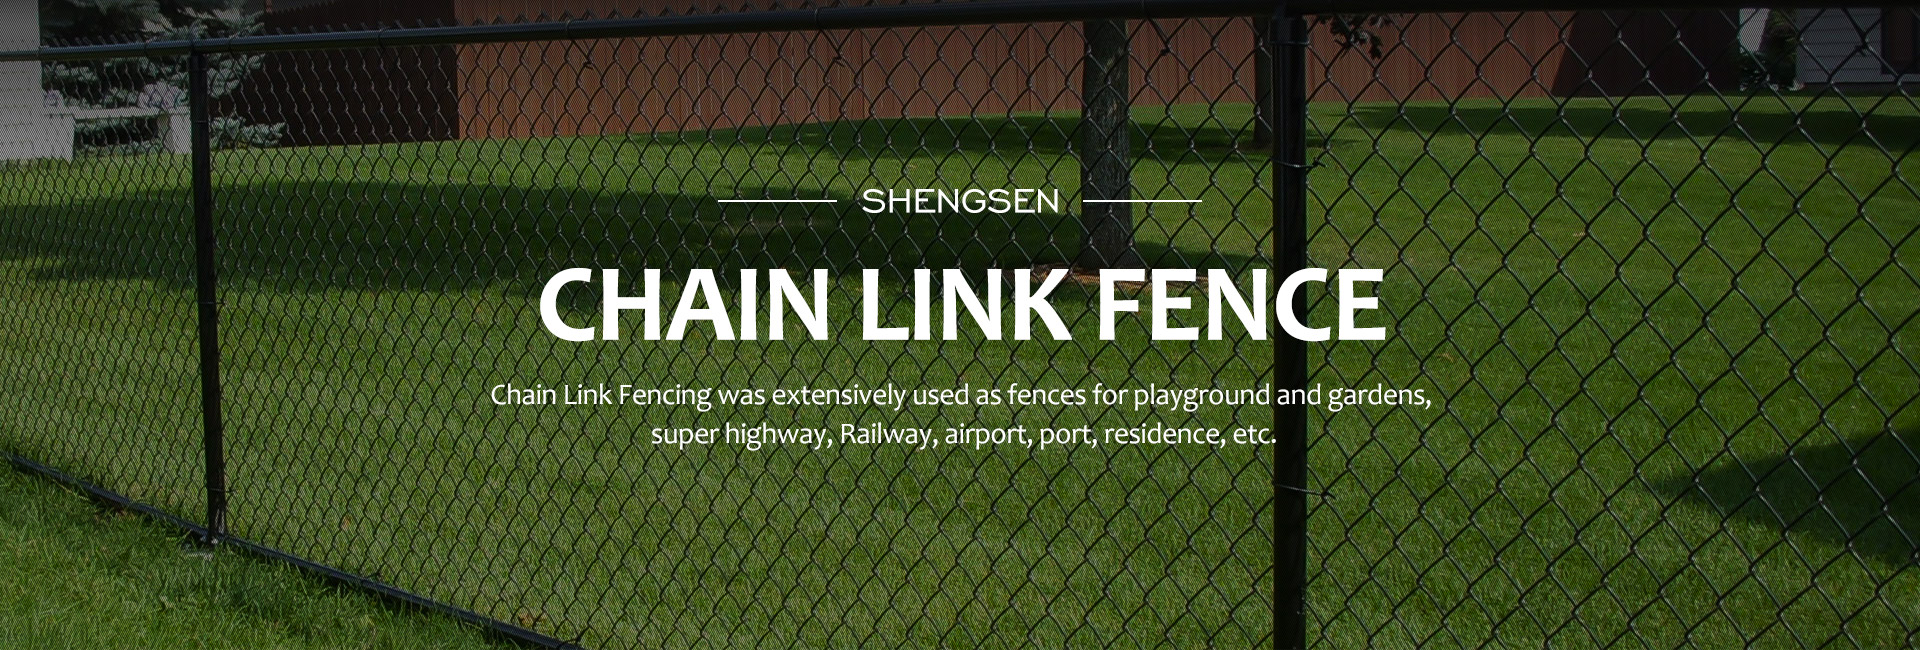 ShengSen chain link fence